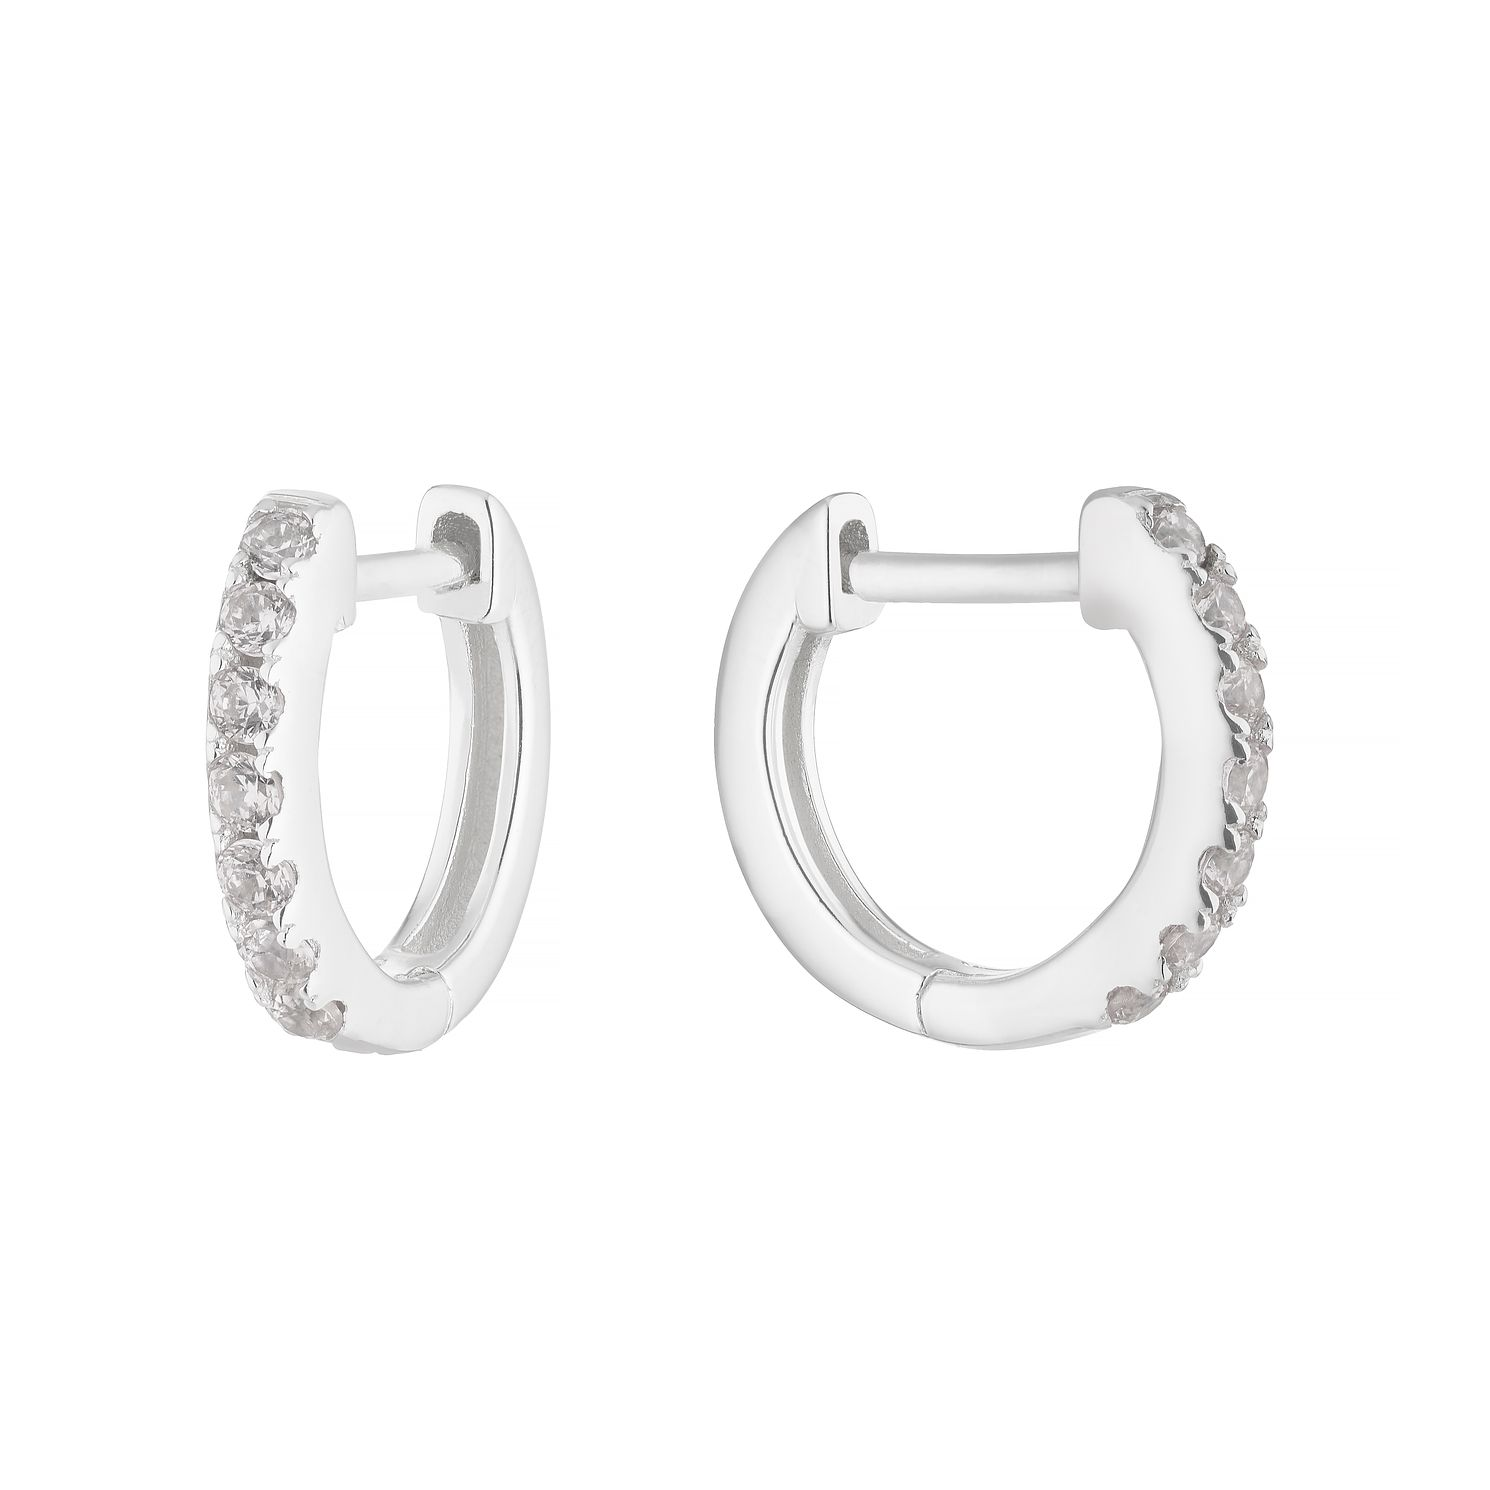 Sterling Silver Cubic Zirconia 9mm Huggie Earrings - Product number 1159623